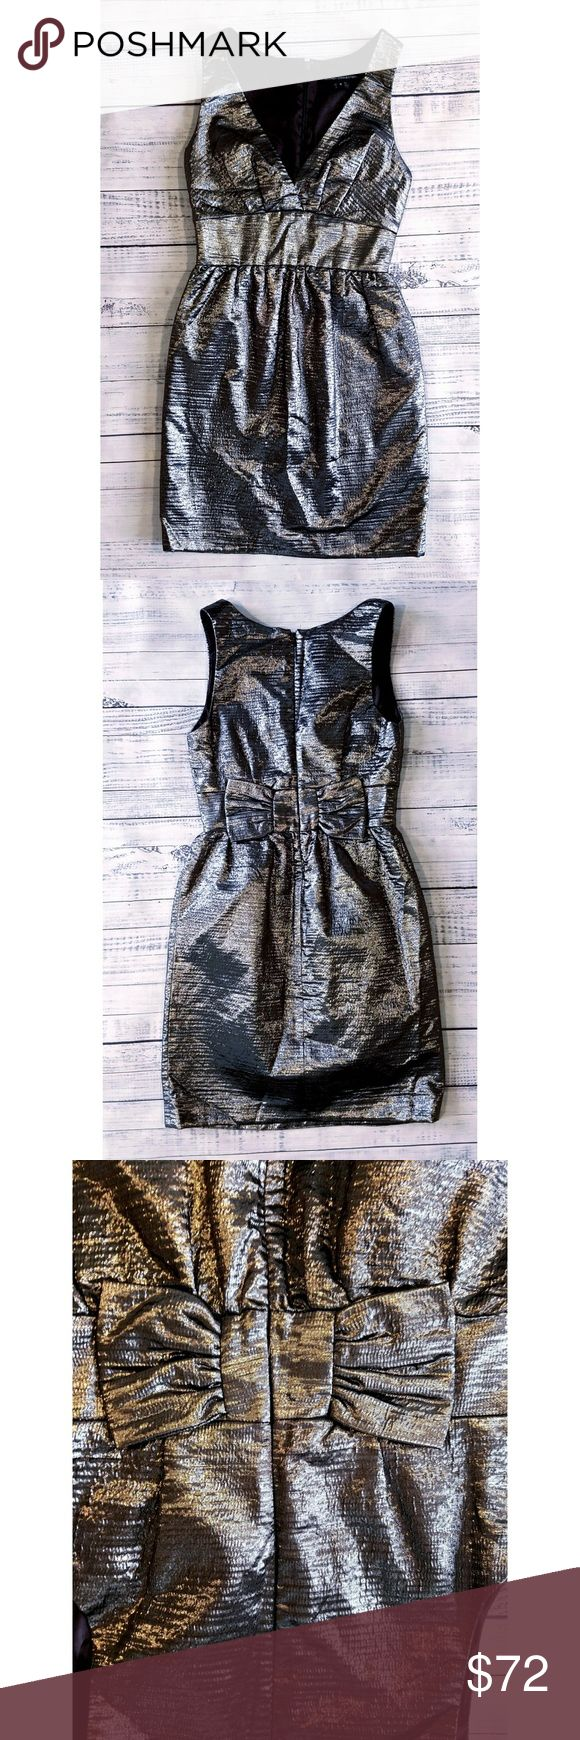 French Connection silver metallic party dress Worn once and dry cleaned  13 inch waist while flat  15.75 inches from armpit to armpit  33 inches long Metallic fabric Linned Zipper in back Virgin wool, polyester and polyamide/nylon French Connection Dresses